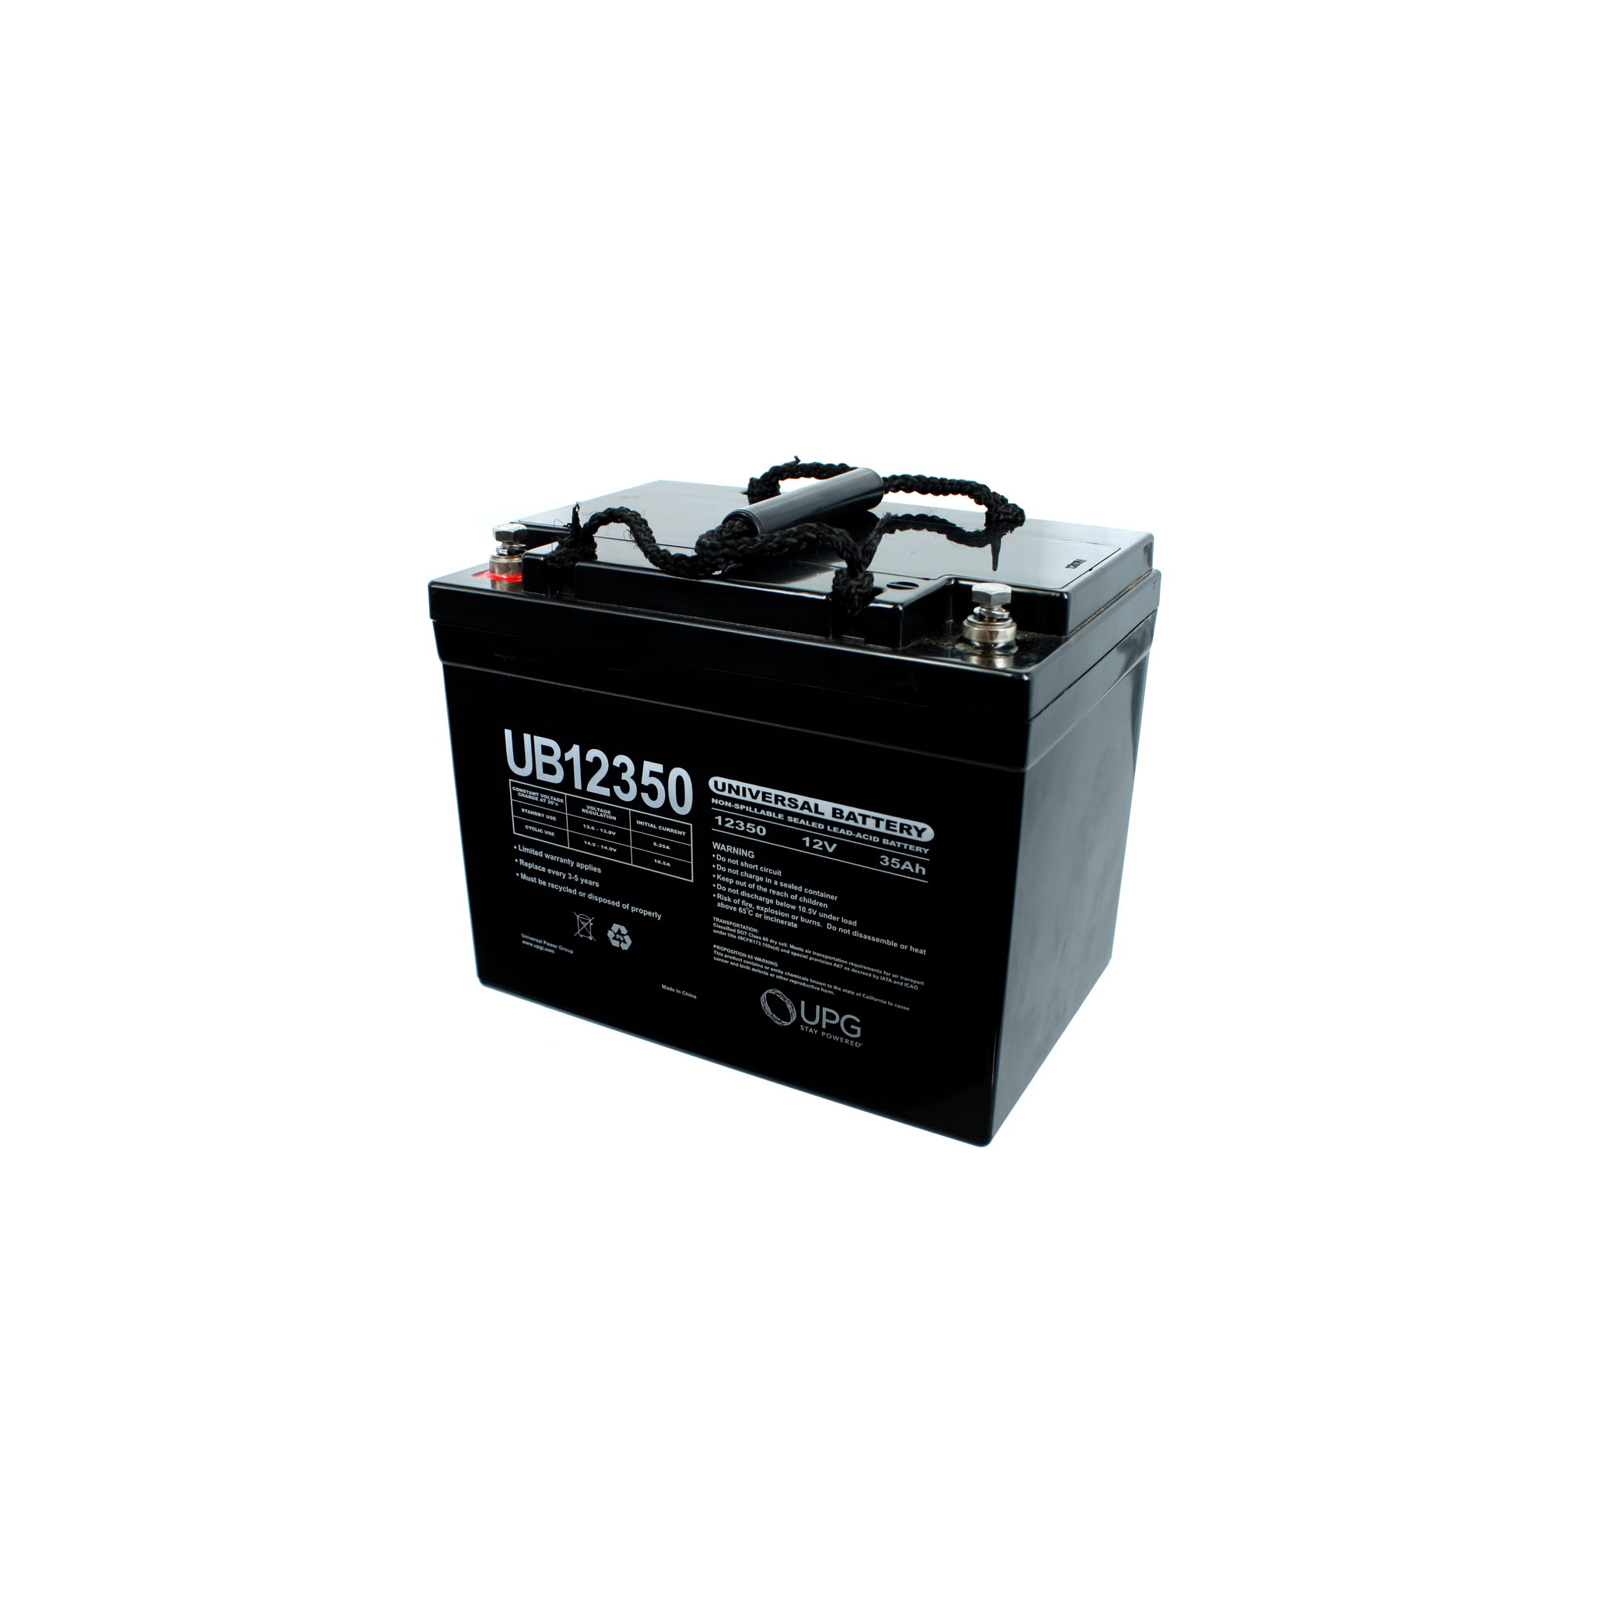 Battery on Upg Ub12350 12v 35ah Agm Sealed Lead Acid Battery Group U1 For